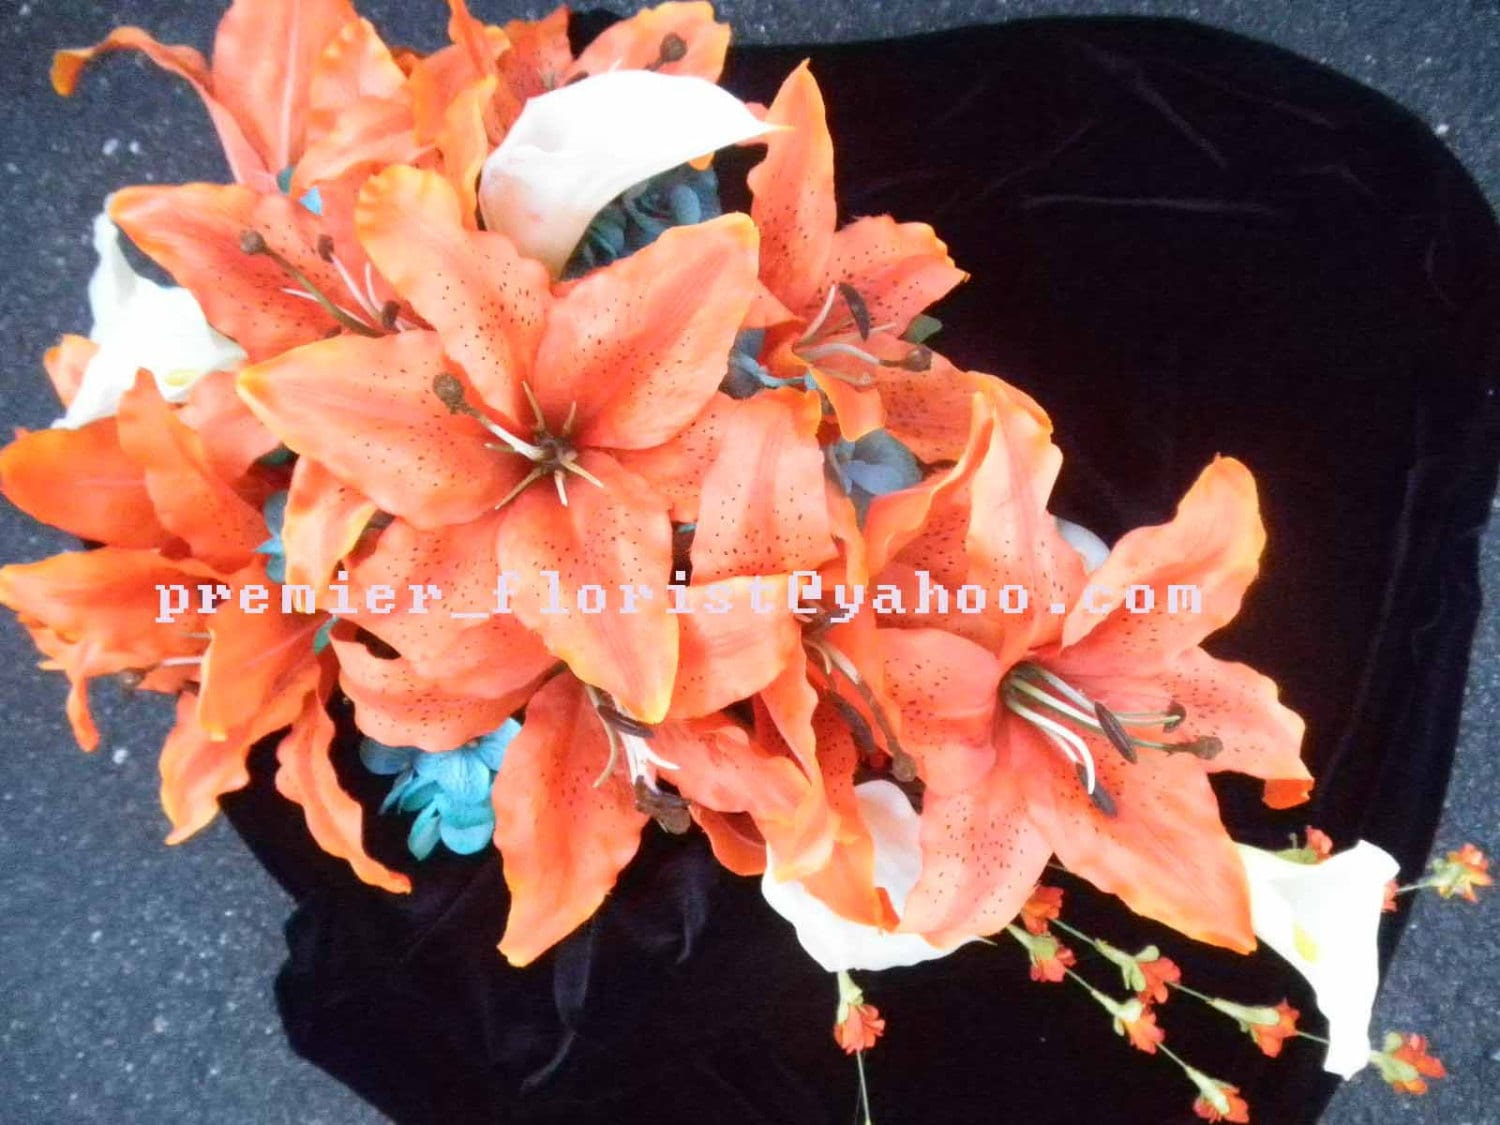 Stargazer lily cascade bridal bouquet white real touch calla and stargazer lily cascade bridal bouquet white real touch calla and orange coral rhubrum tiger lilies roses teal turquoise blue hydrangea izmirmasajfo